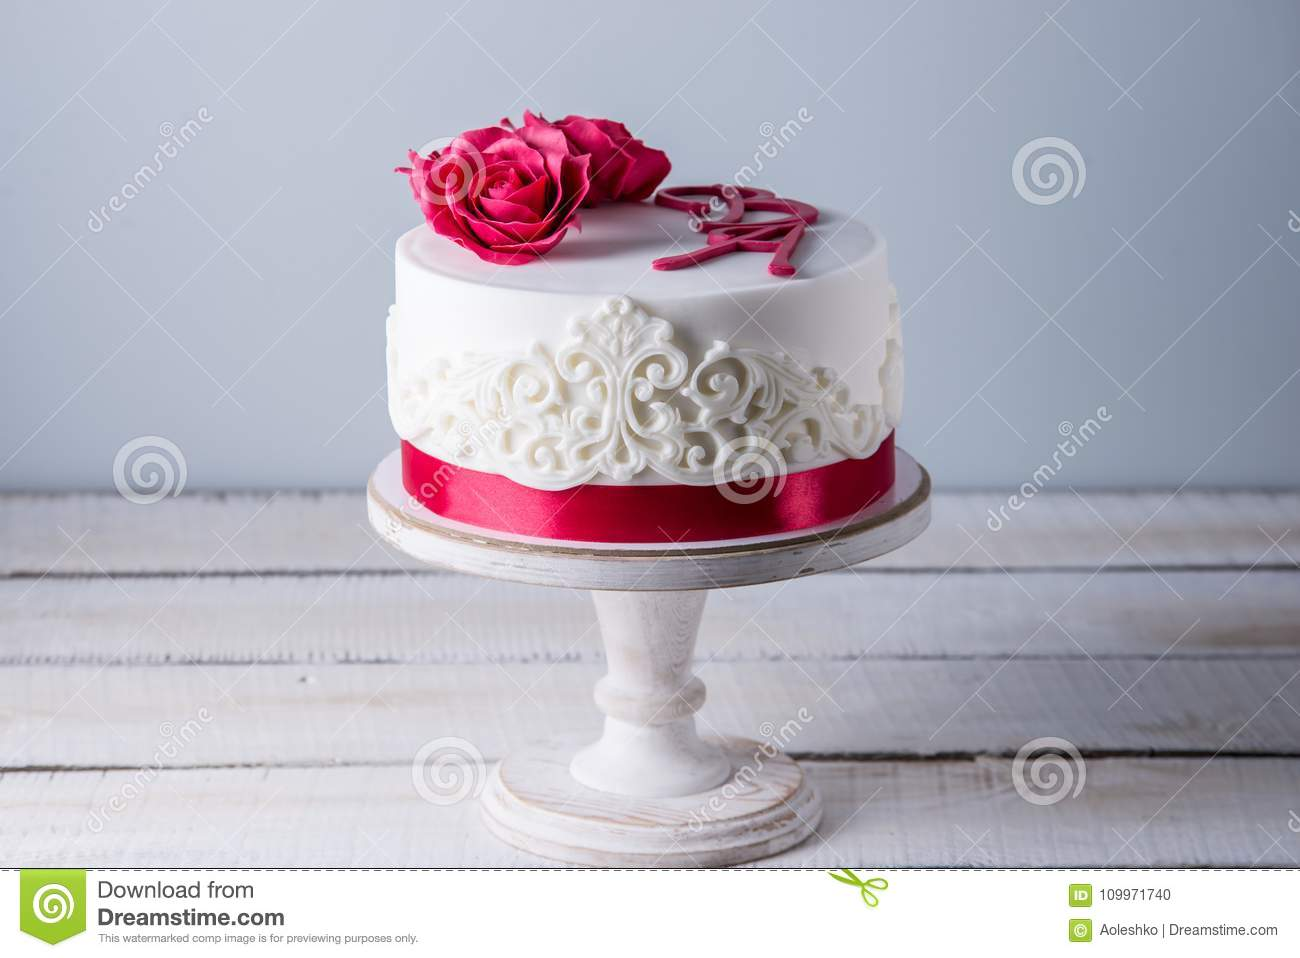 Beautiful White Wedding Cake Decorated With Flowers Red Roses And